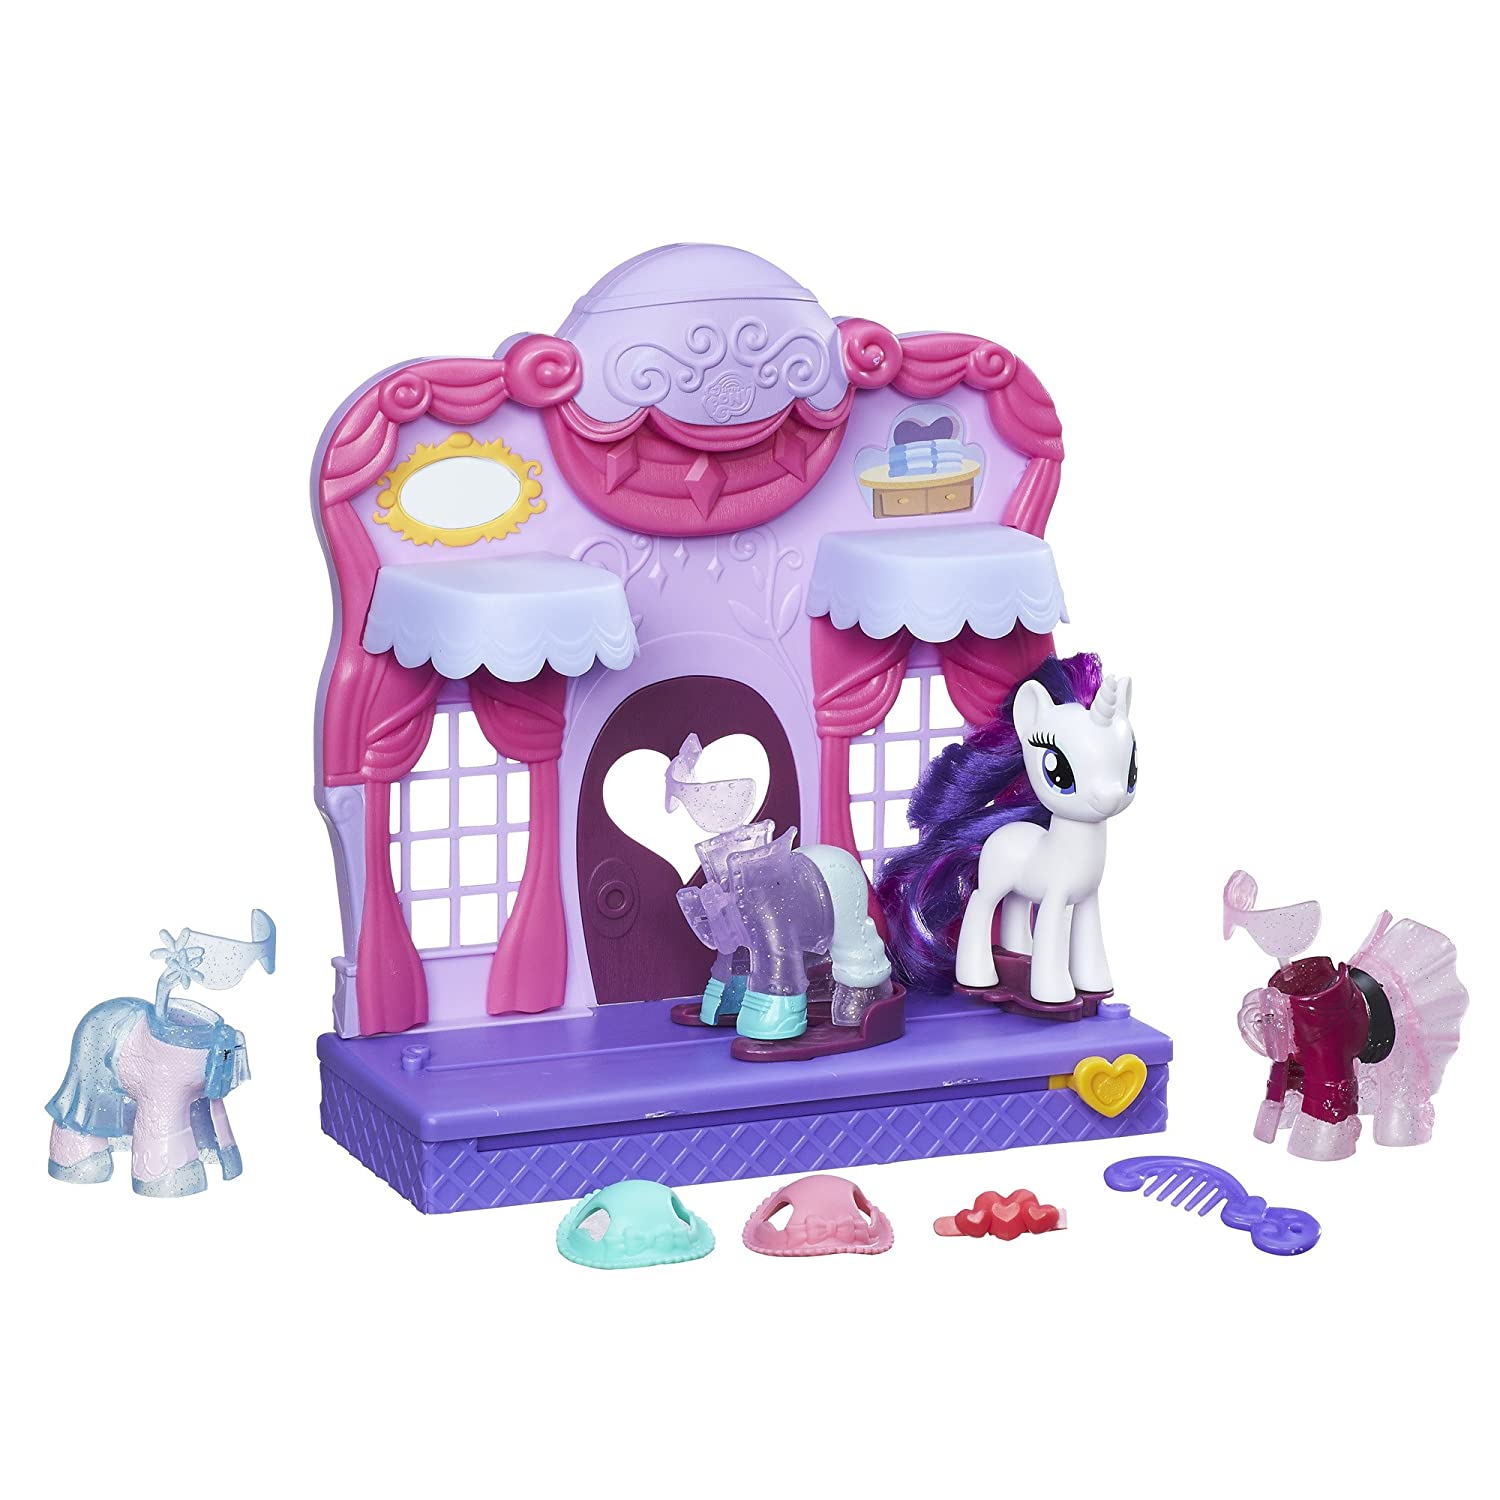 My Little Pony Friendship is Magic Rarity Fashion Runway Playset